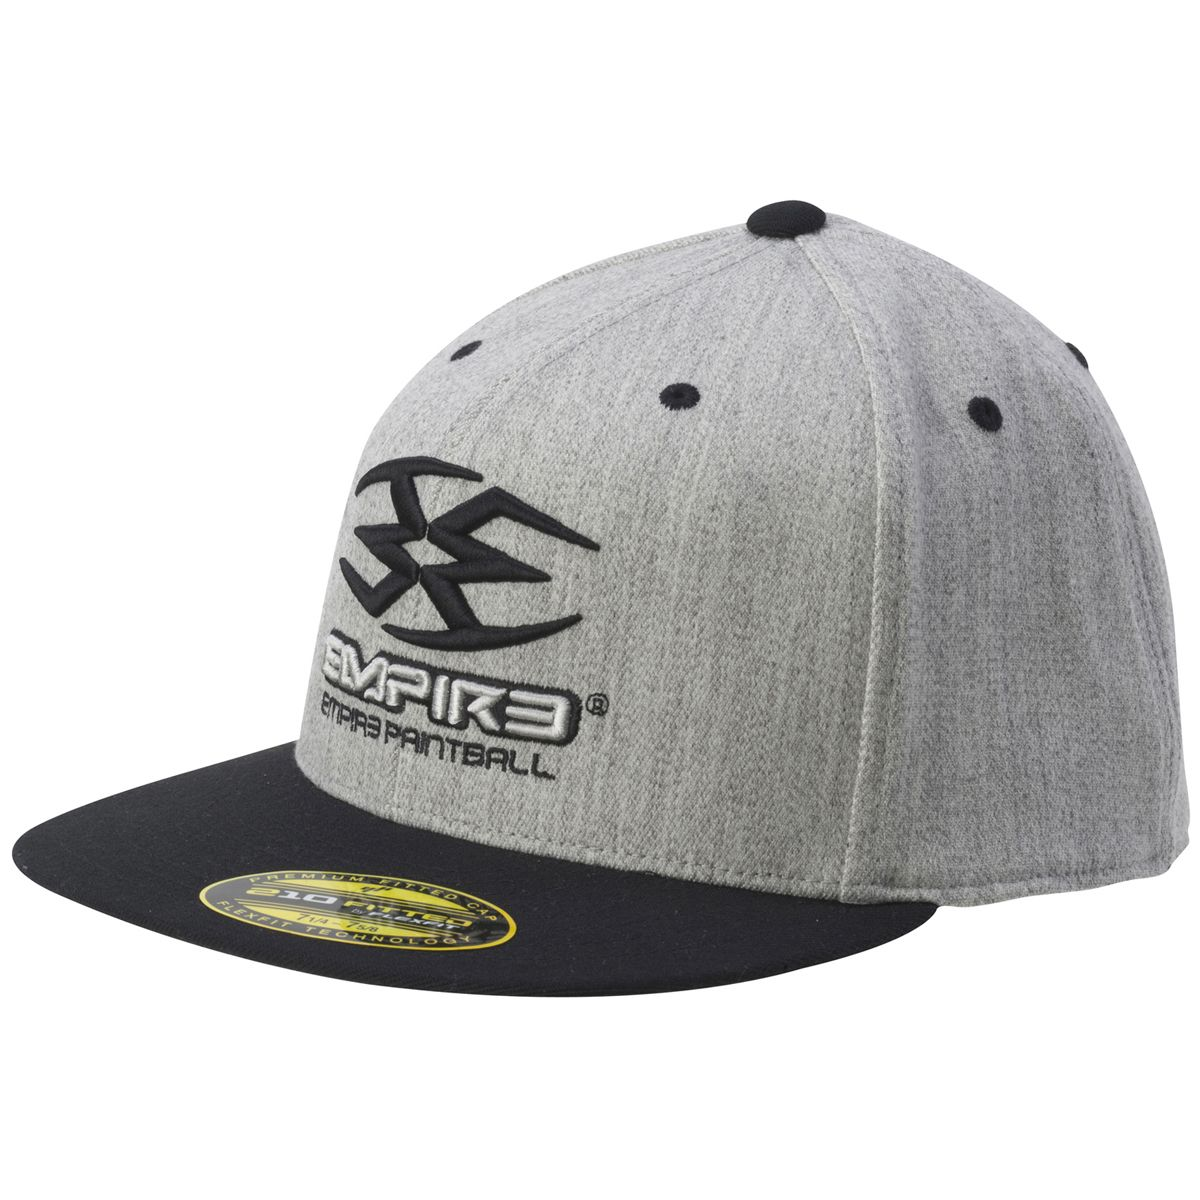 empire-lifestyle-tw-hat-origin